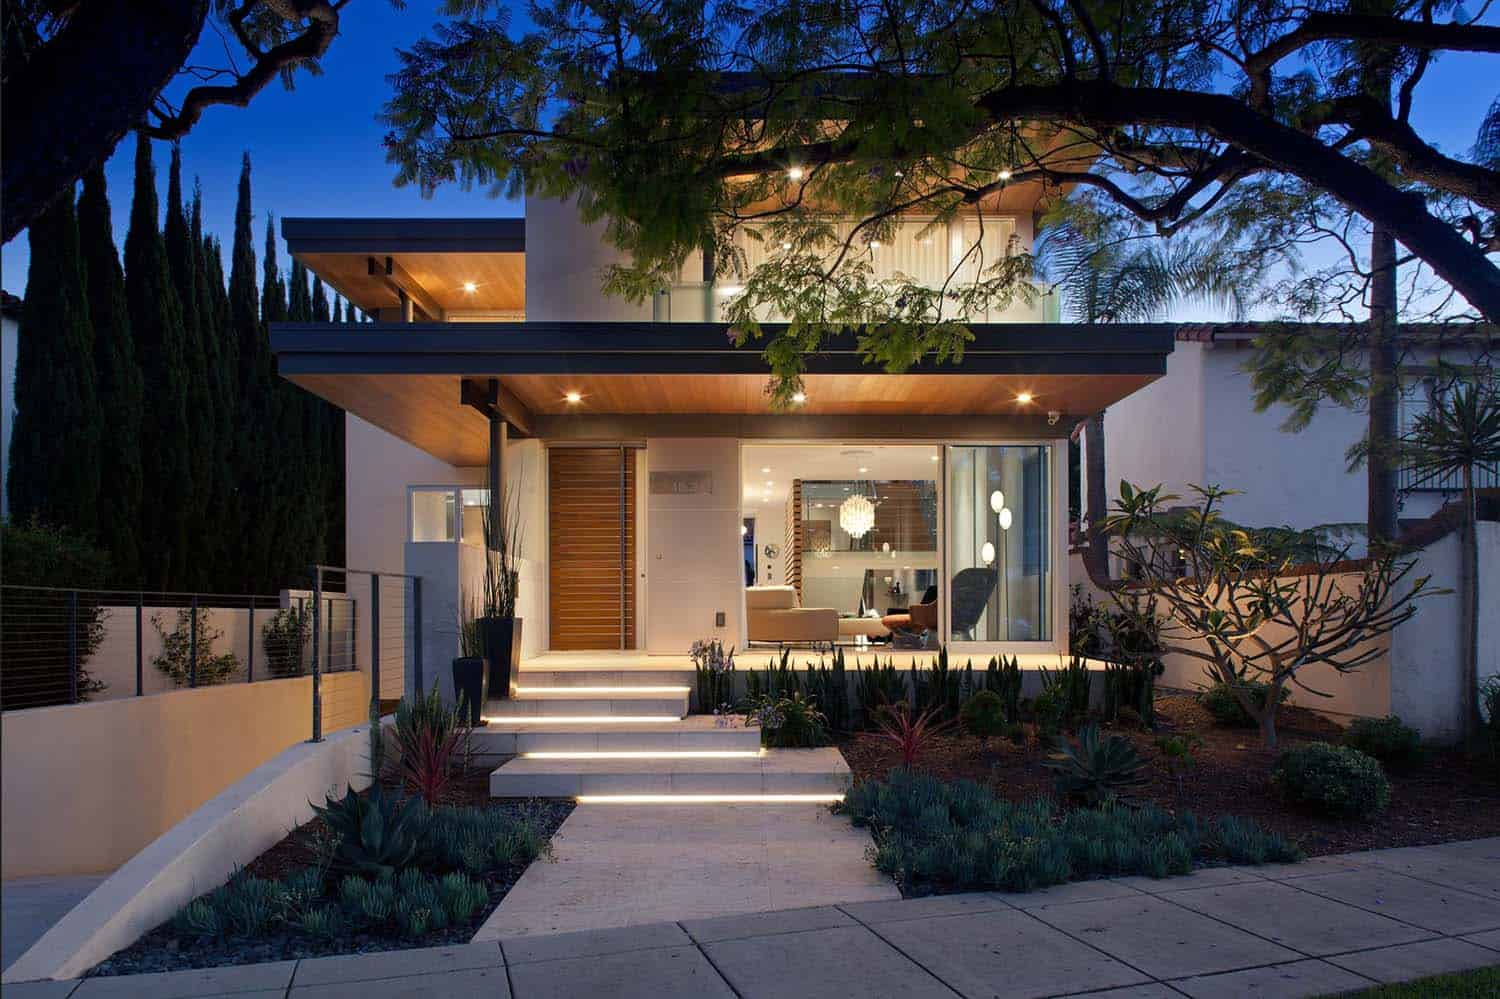 southern california home features an elegant contemporary